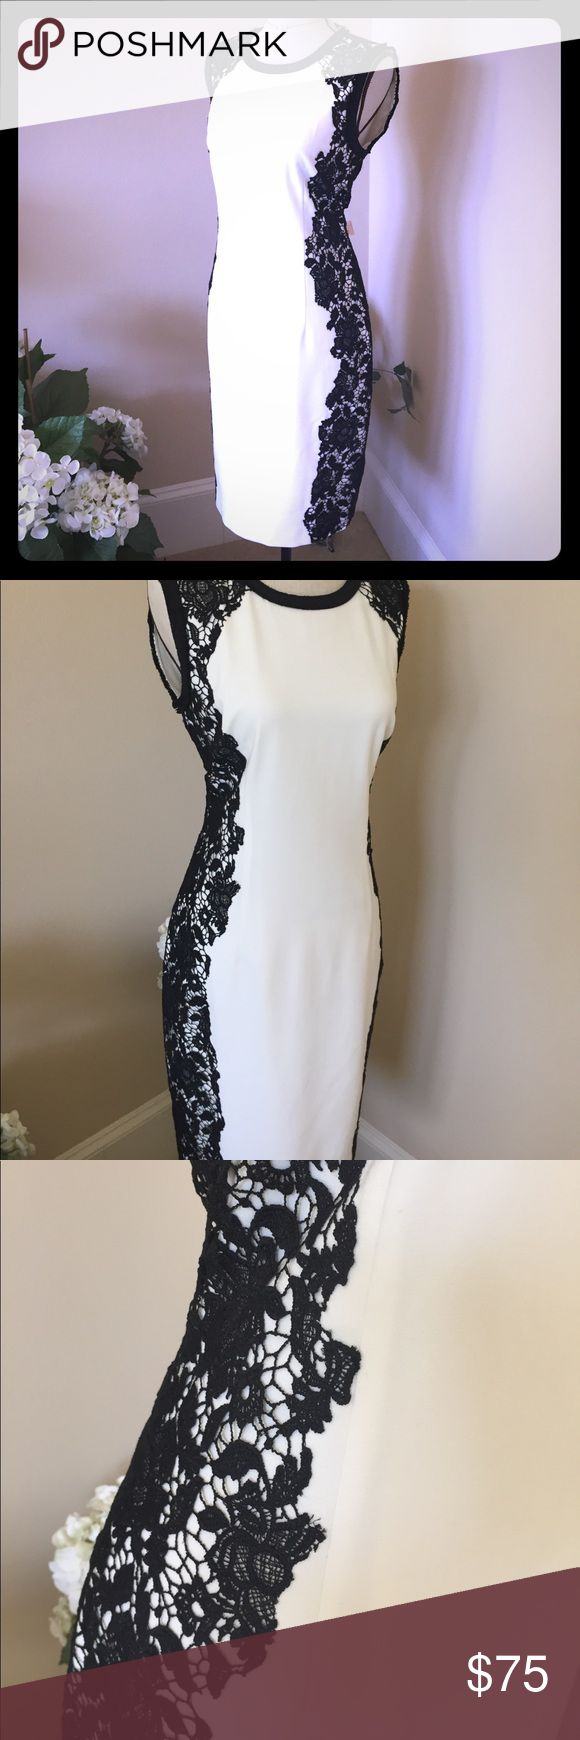 Tahari dress size 6 Sharp and very smart white dress with stunning black lace down both sides emphasizing a  real hour glass shape . Perfect teamed with any color so perfect all season T Tahari Dresses Midi